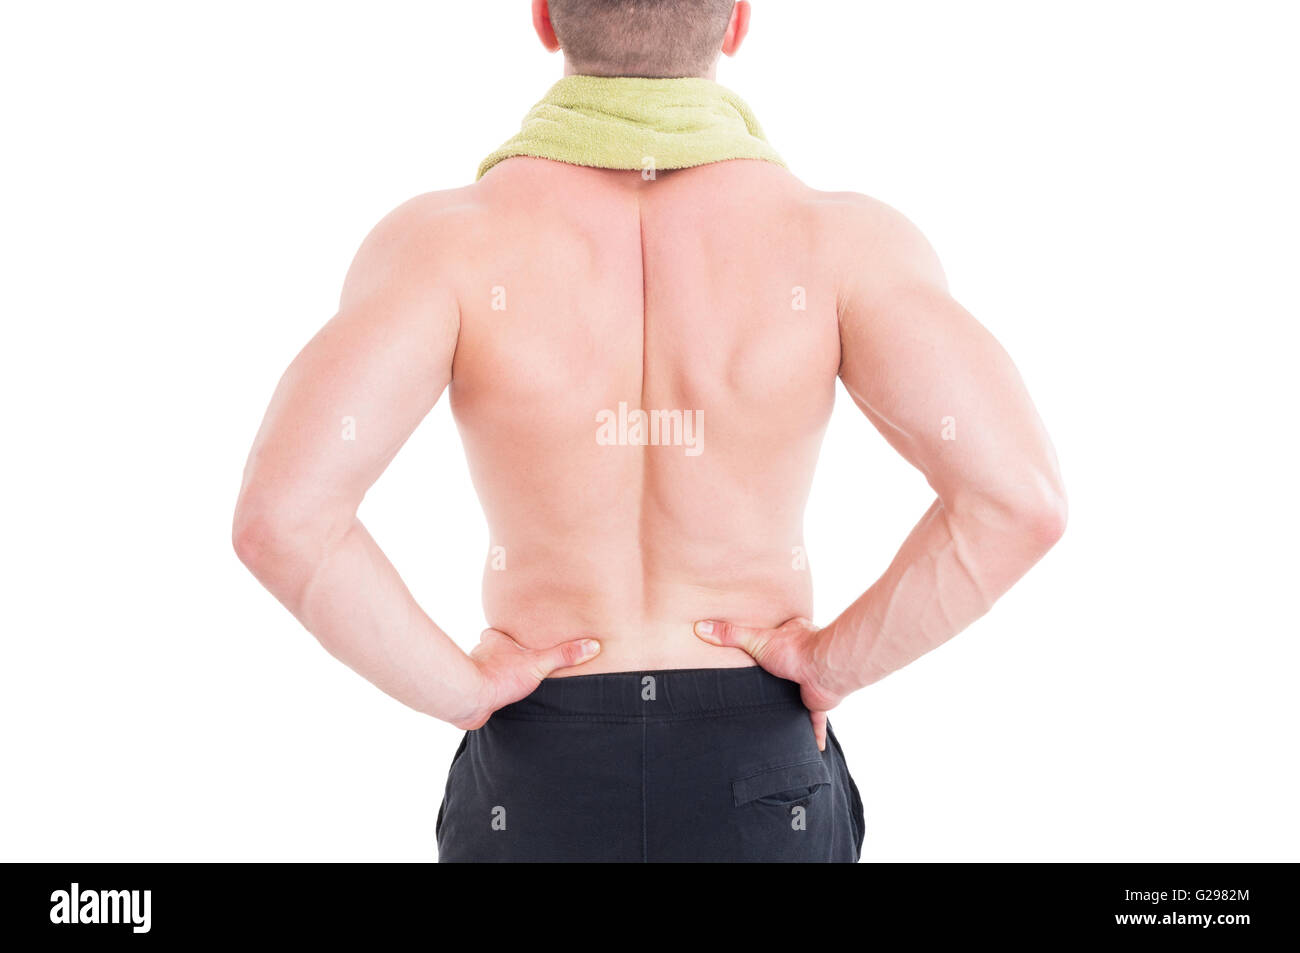 Sportive man holding his lumbar area or lower back after injury and pain - Stock Image